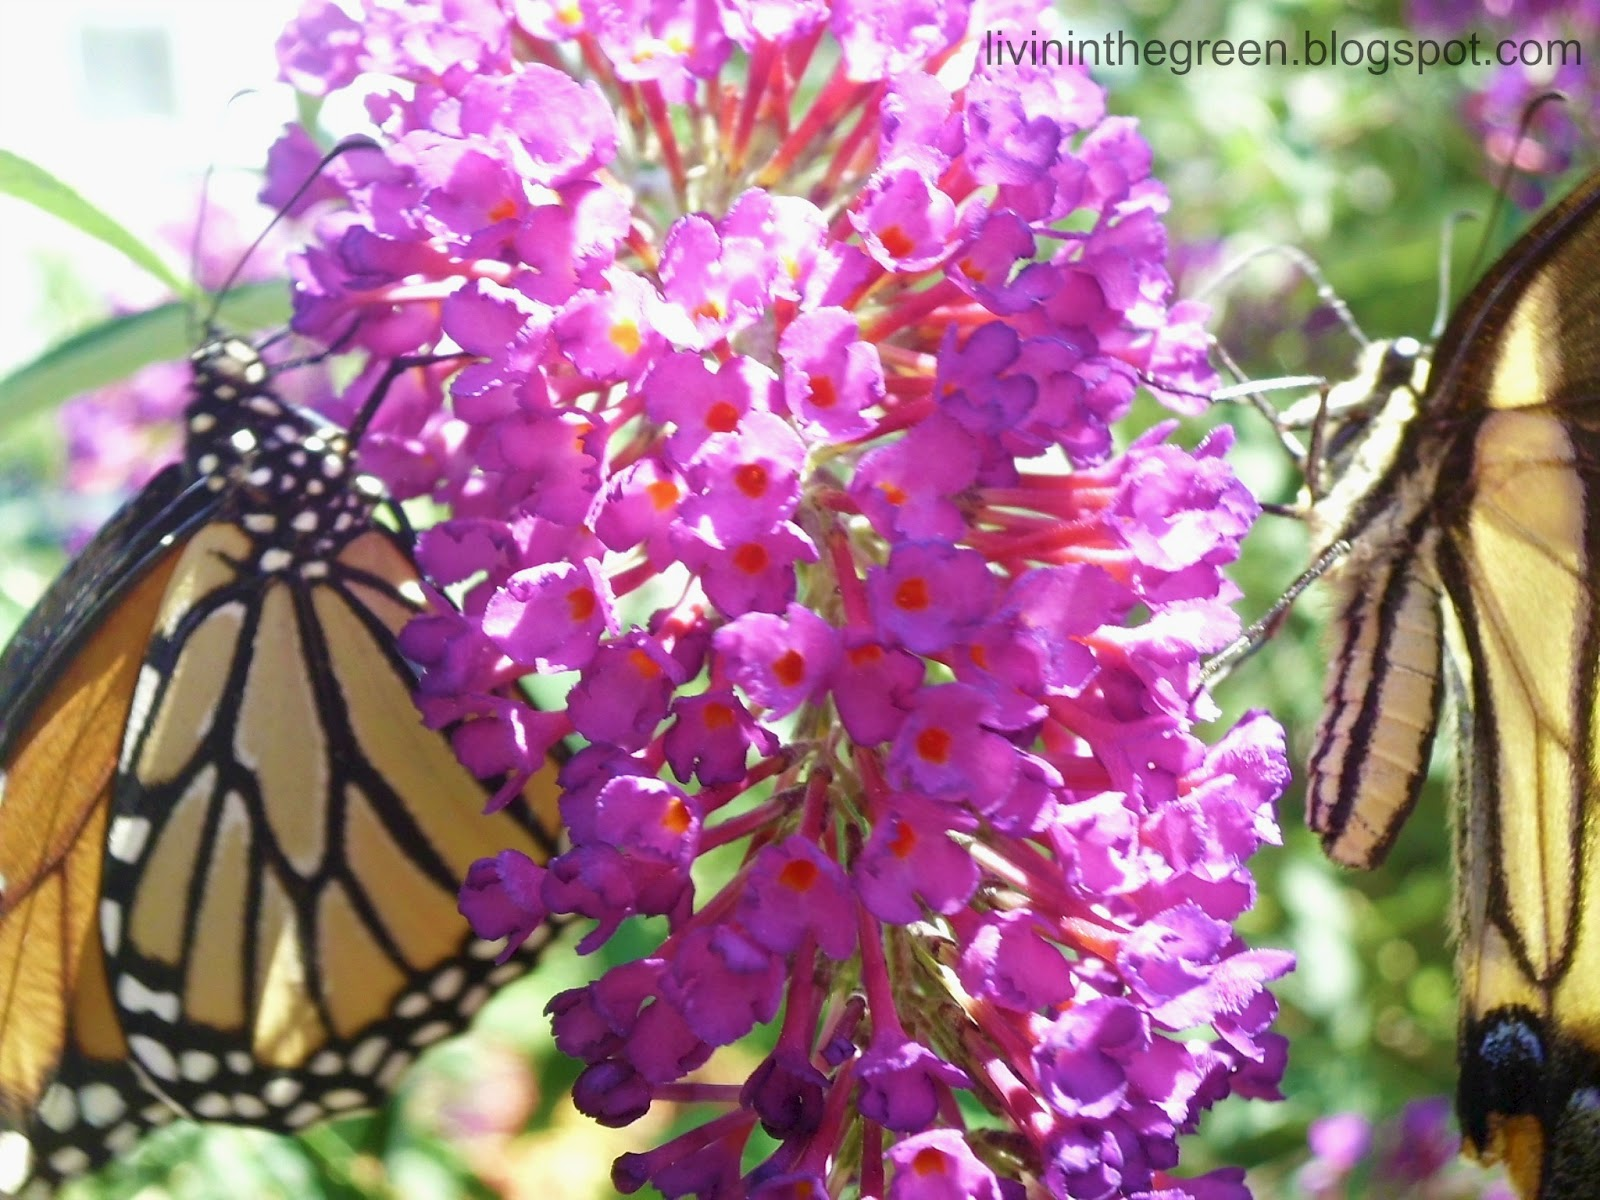 Livin In The Green Attracting Butterflies Plant These and They Will Co